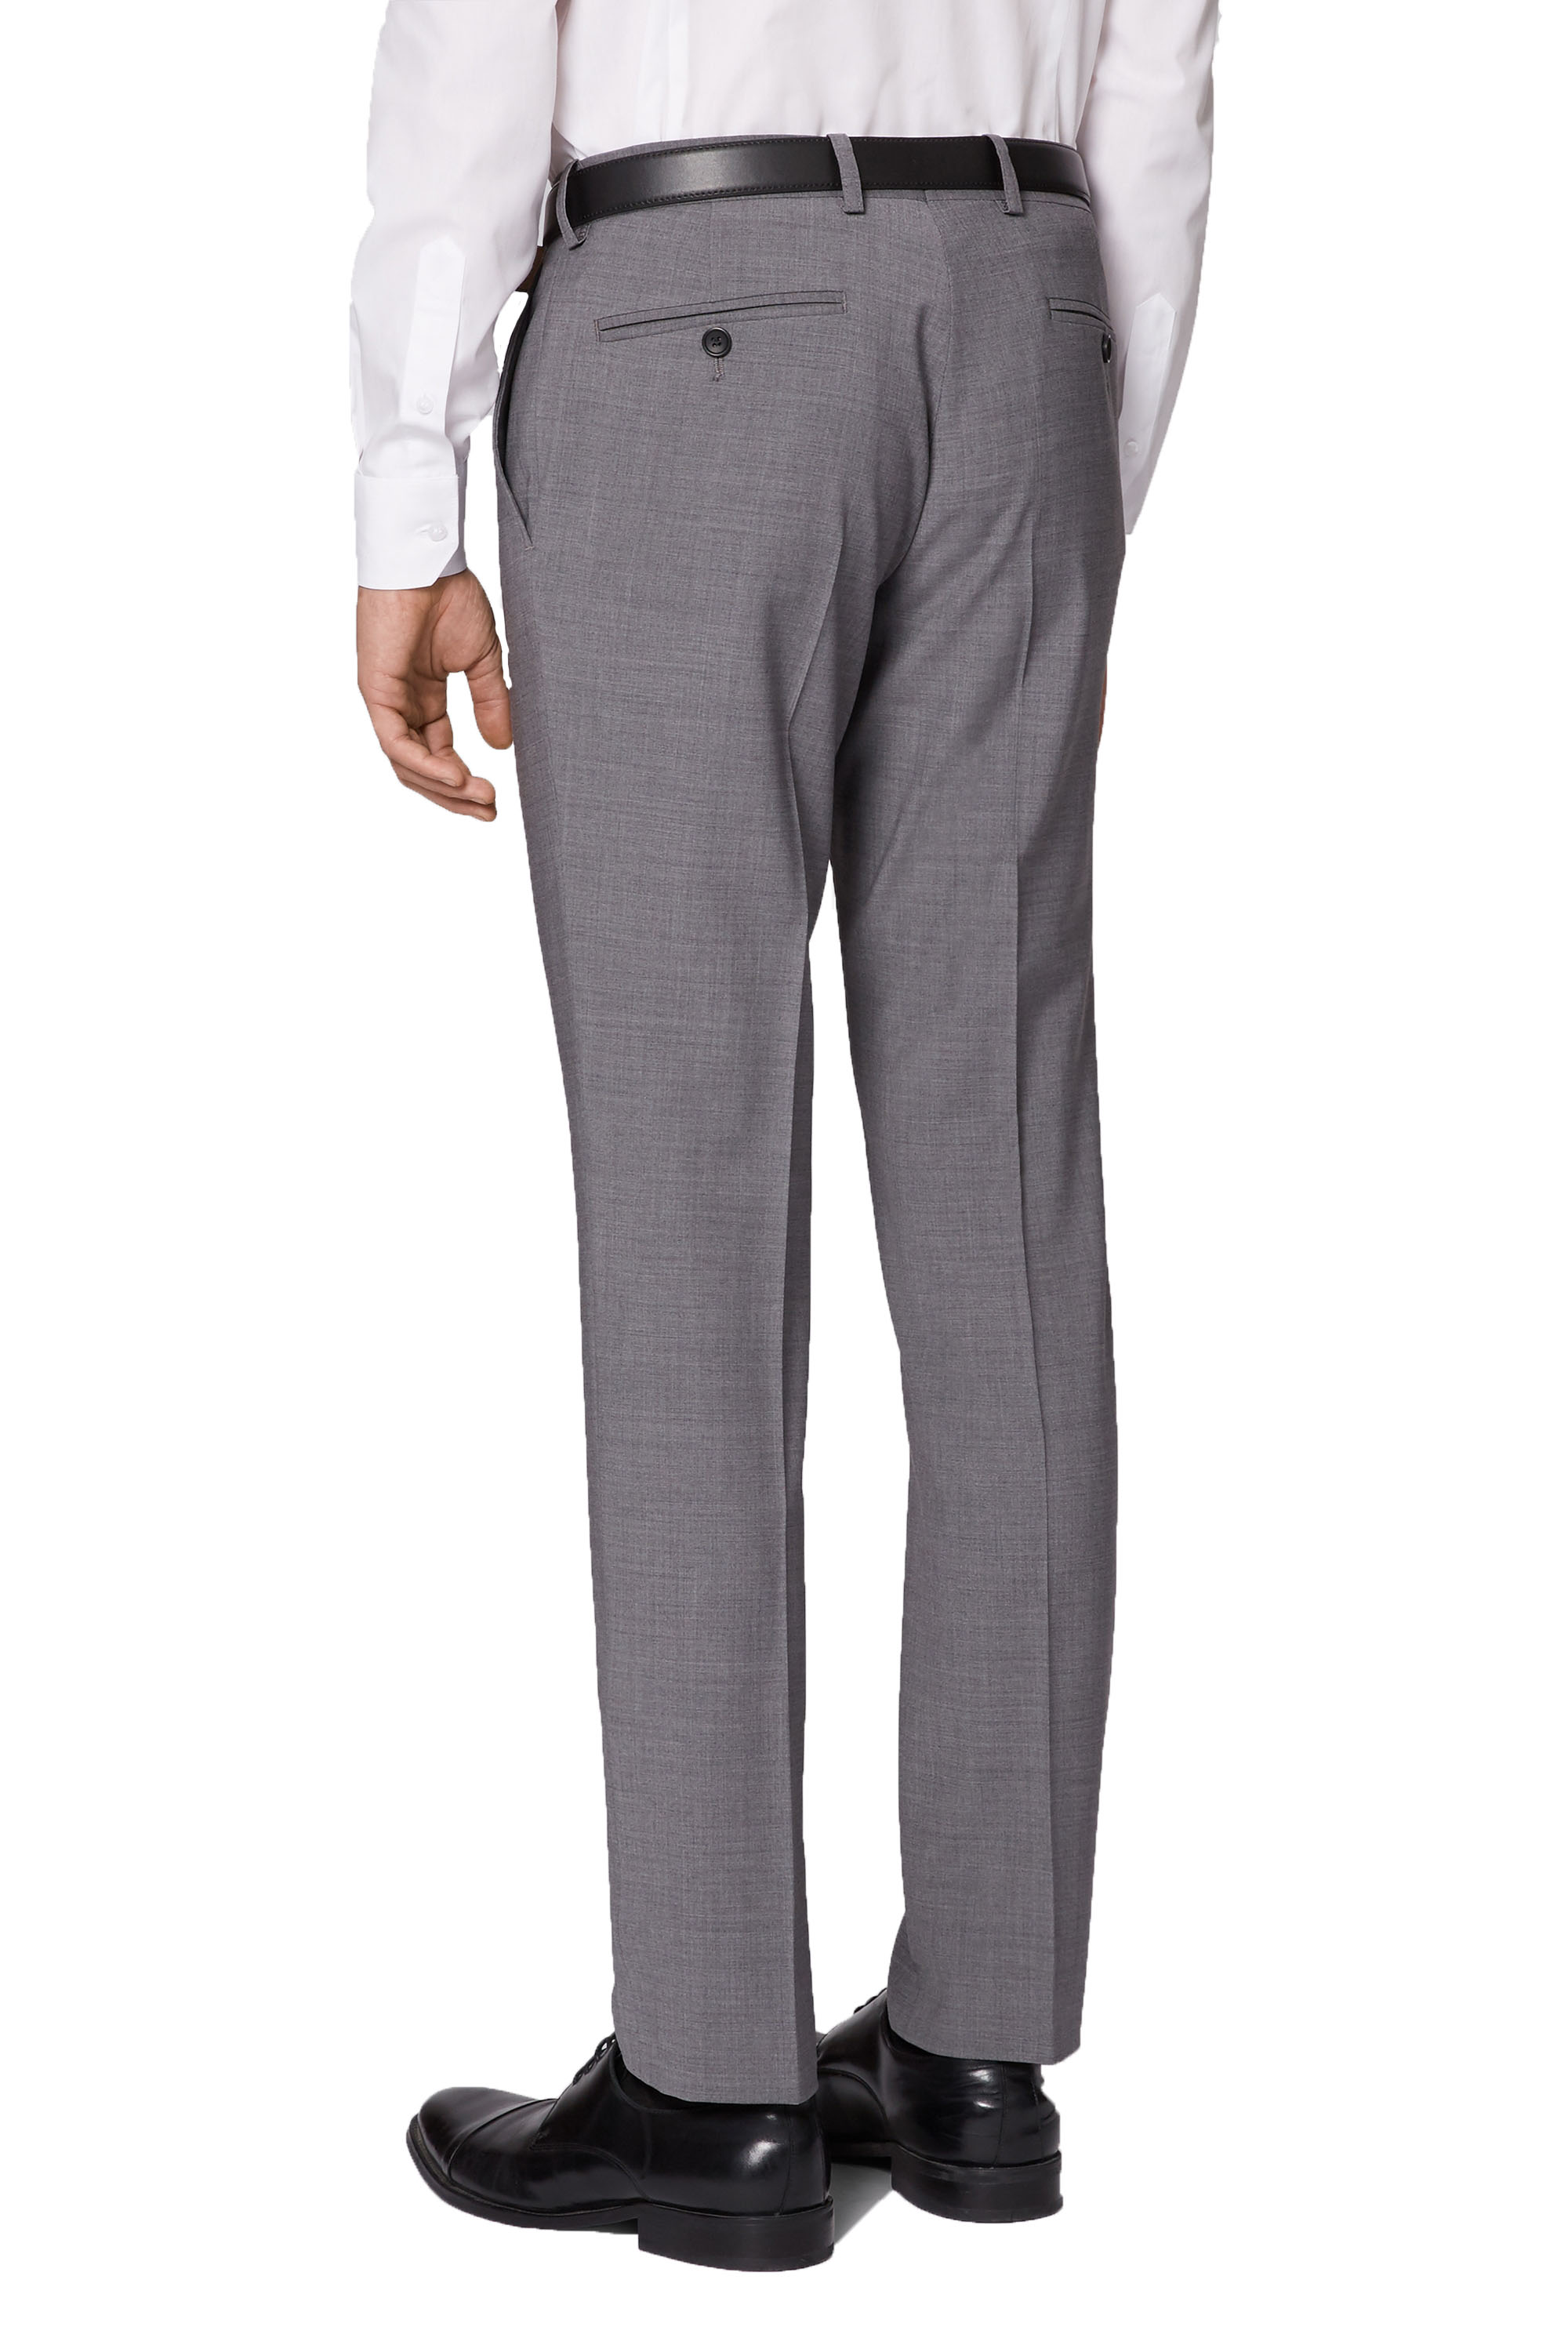 45410511a7a Details about Moss London Light Grey Suit Trousers Skinny Fit Flat Front  Performance Pants